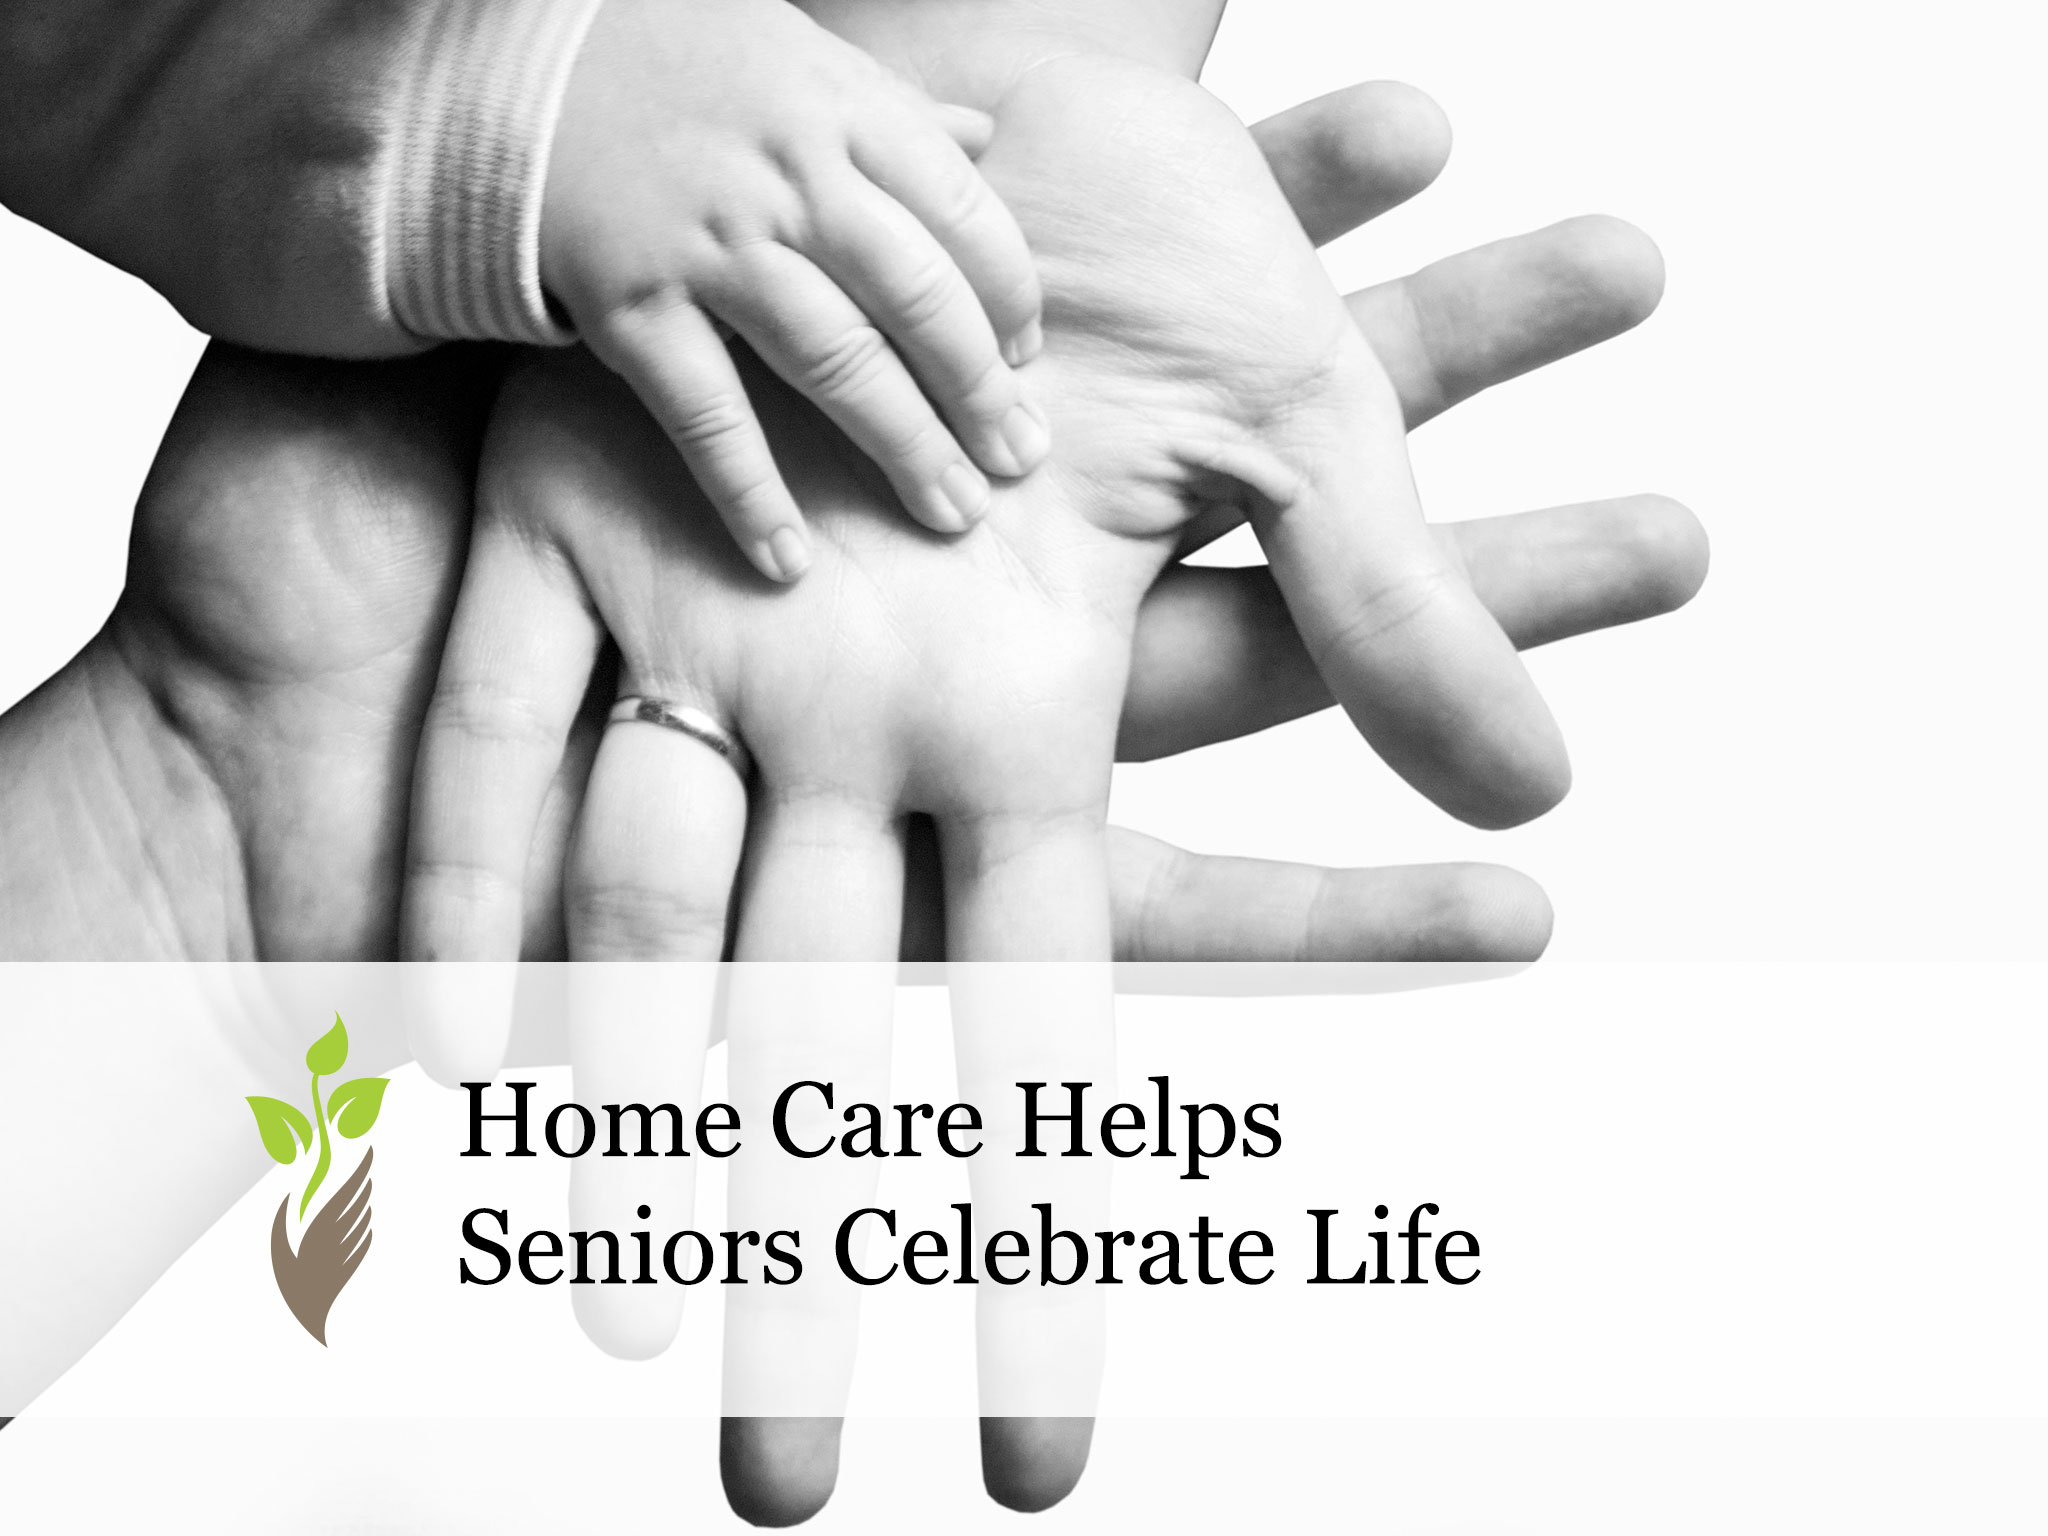 Home Care Helps Seniors Celebrate Life